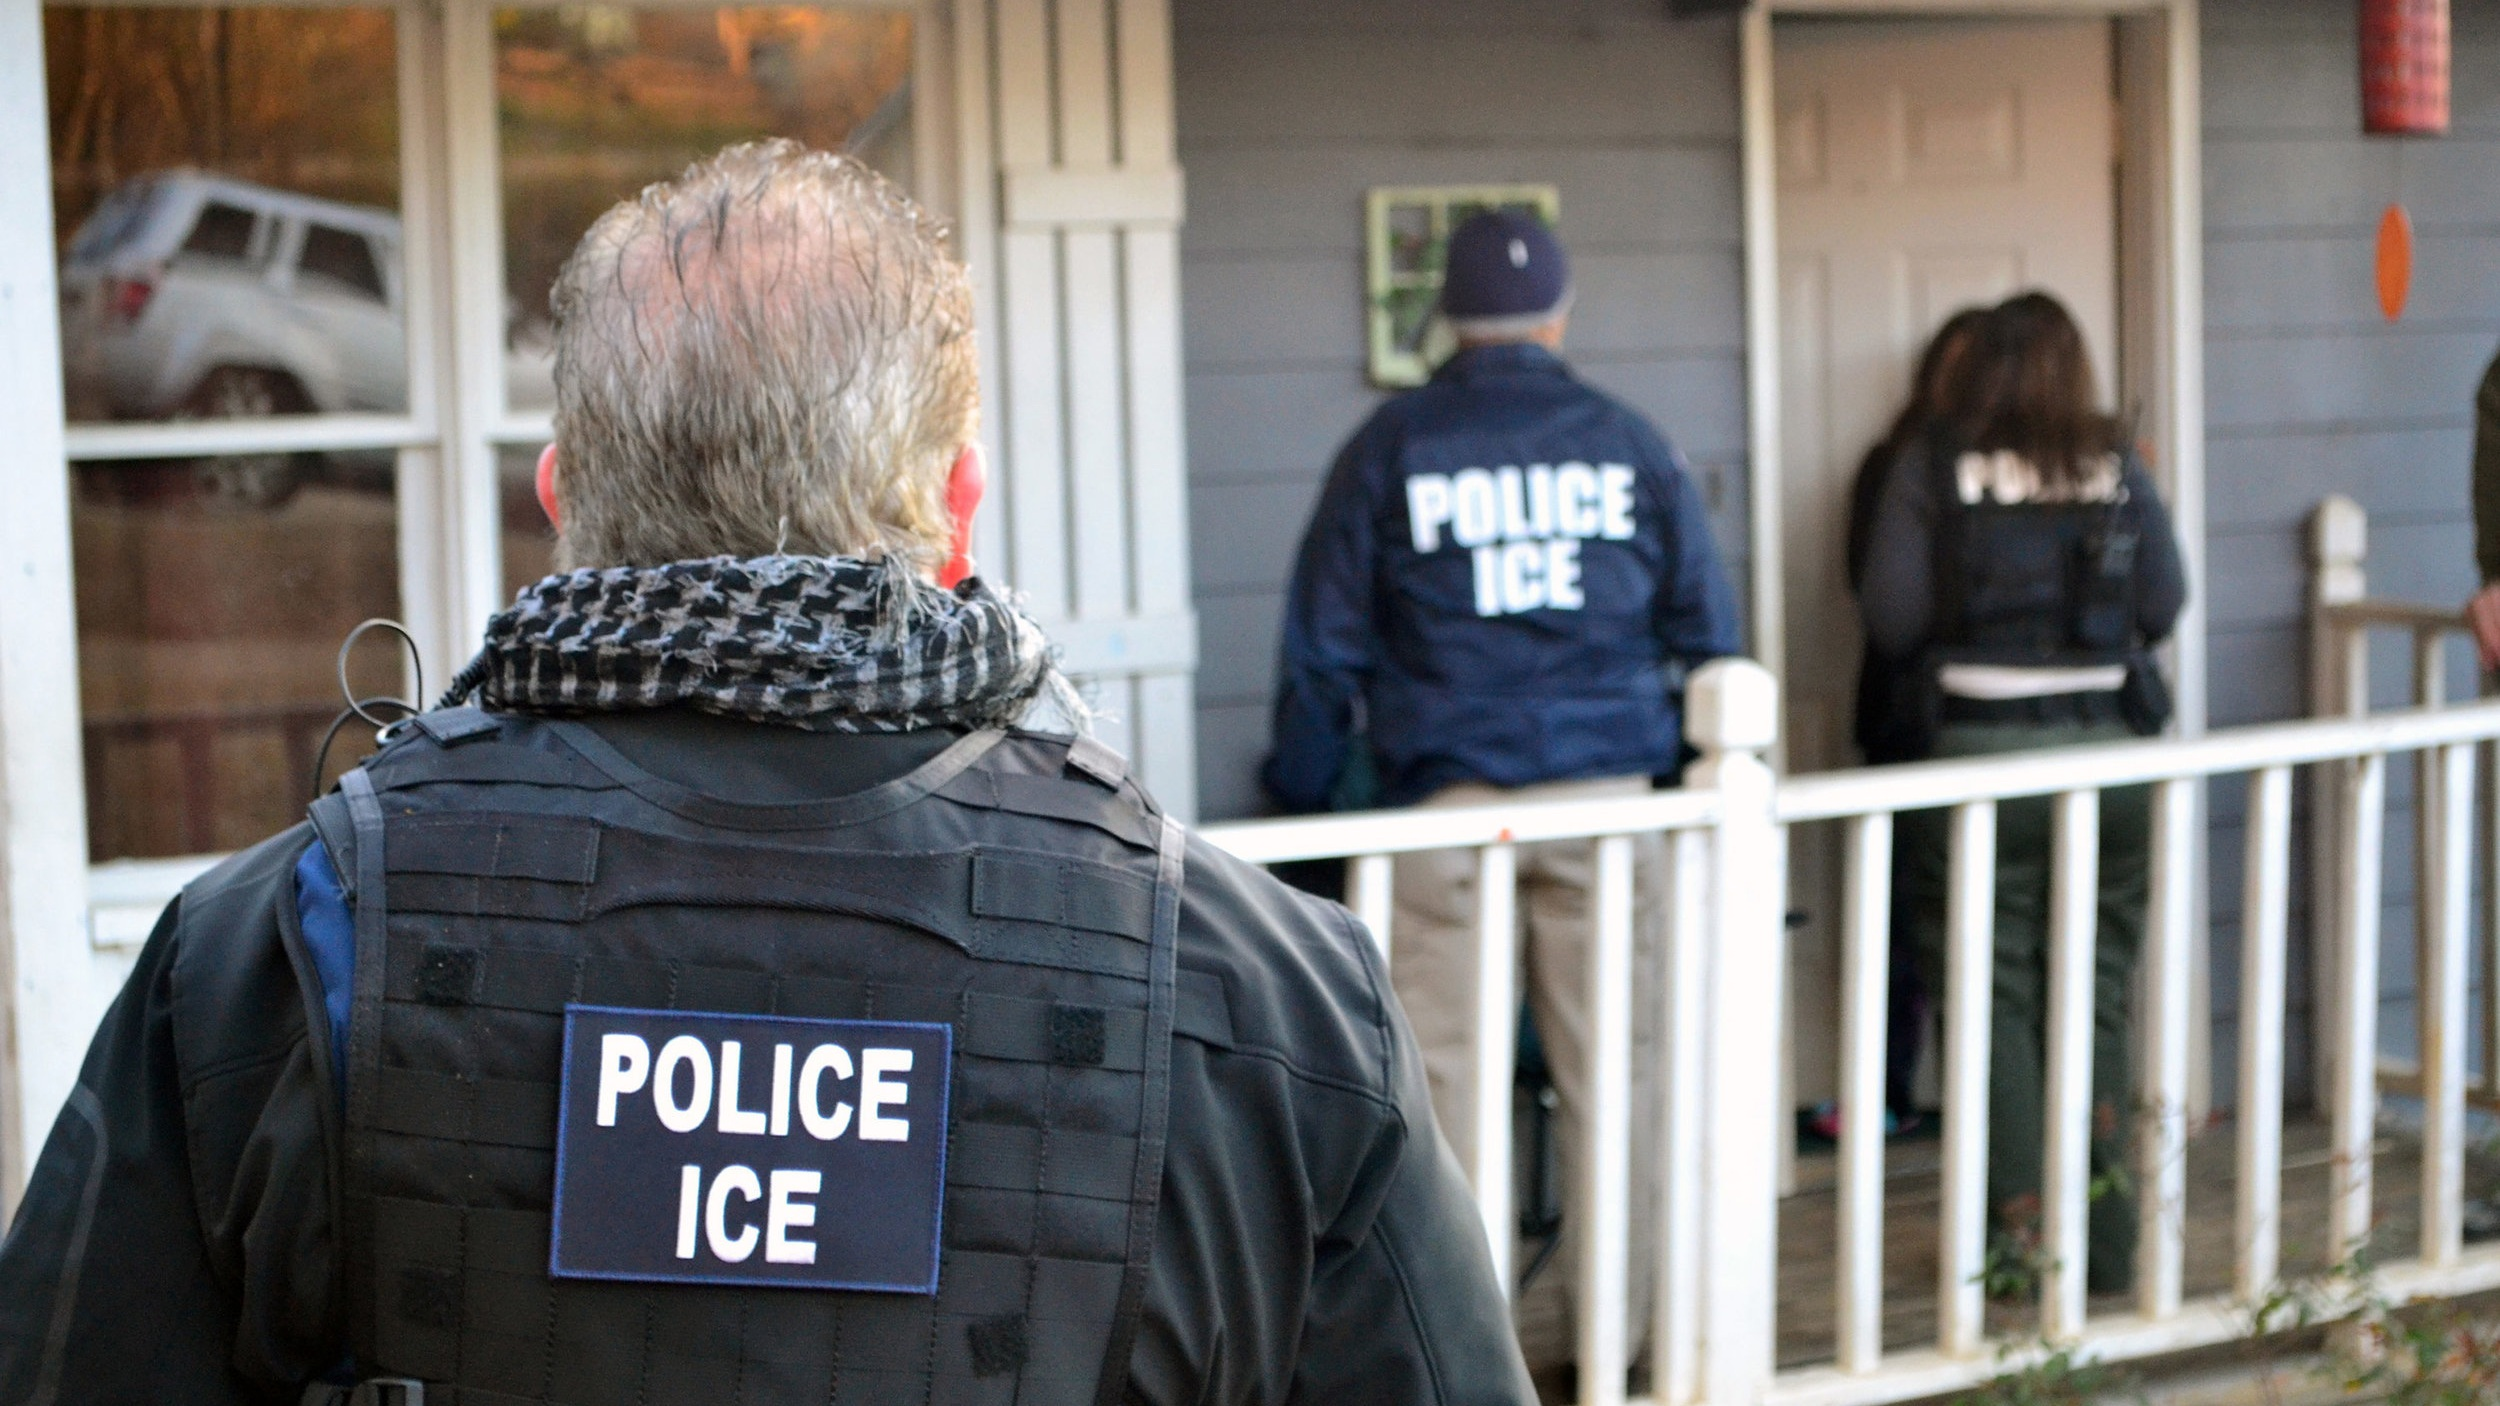 Bill Cox / US Immigration and Customs Enforcement / Getty Images